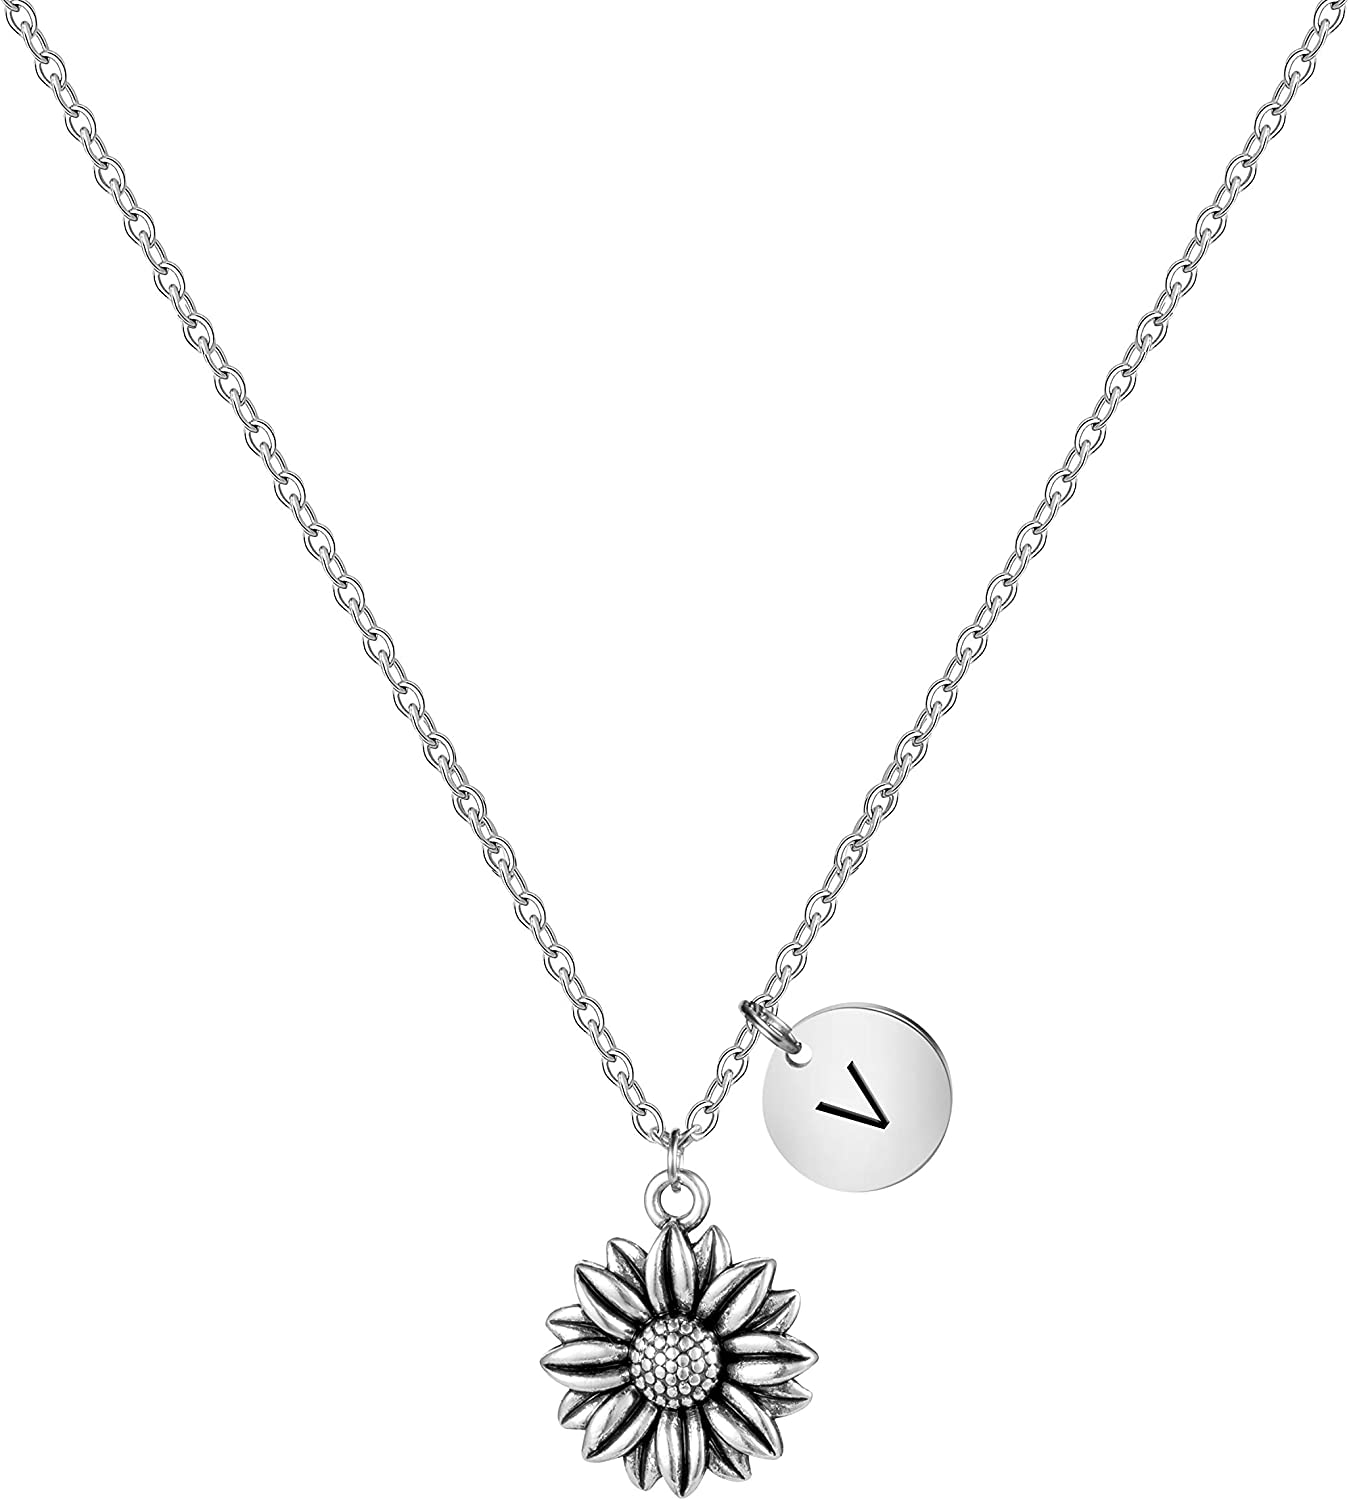 MEMGIFT Silver Sunflower Necklace Your are My Sunshine Jewelry Personalized Initial Letter Charm Pendant Unique Gifts for Mothers Day Christmas Birthday